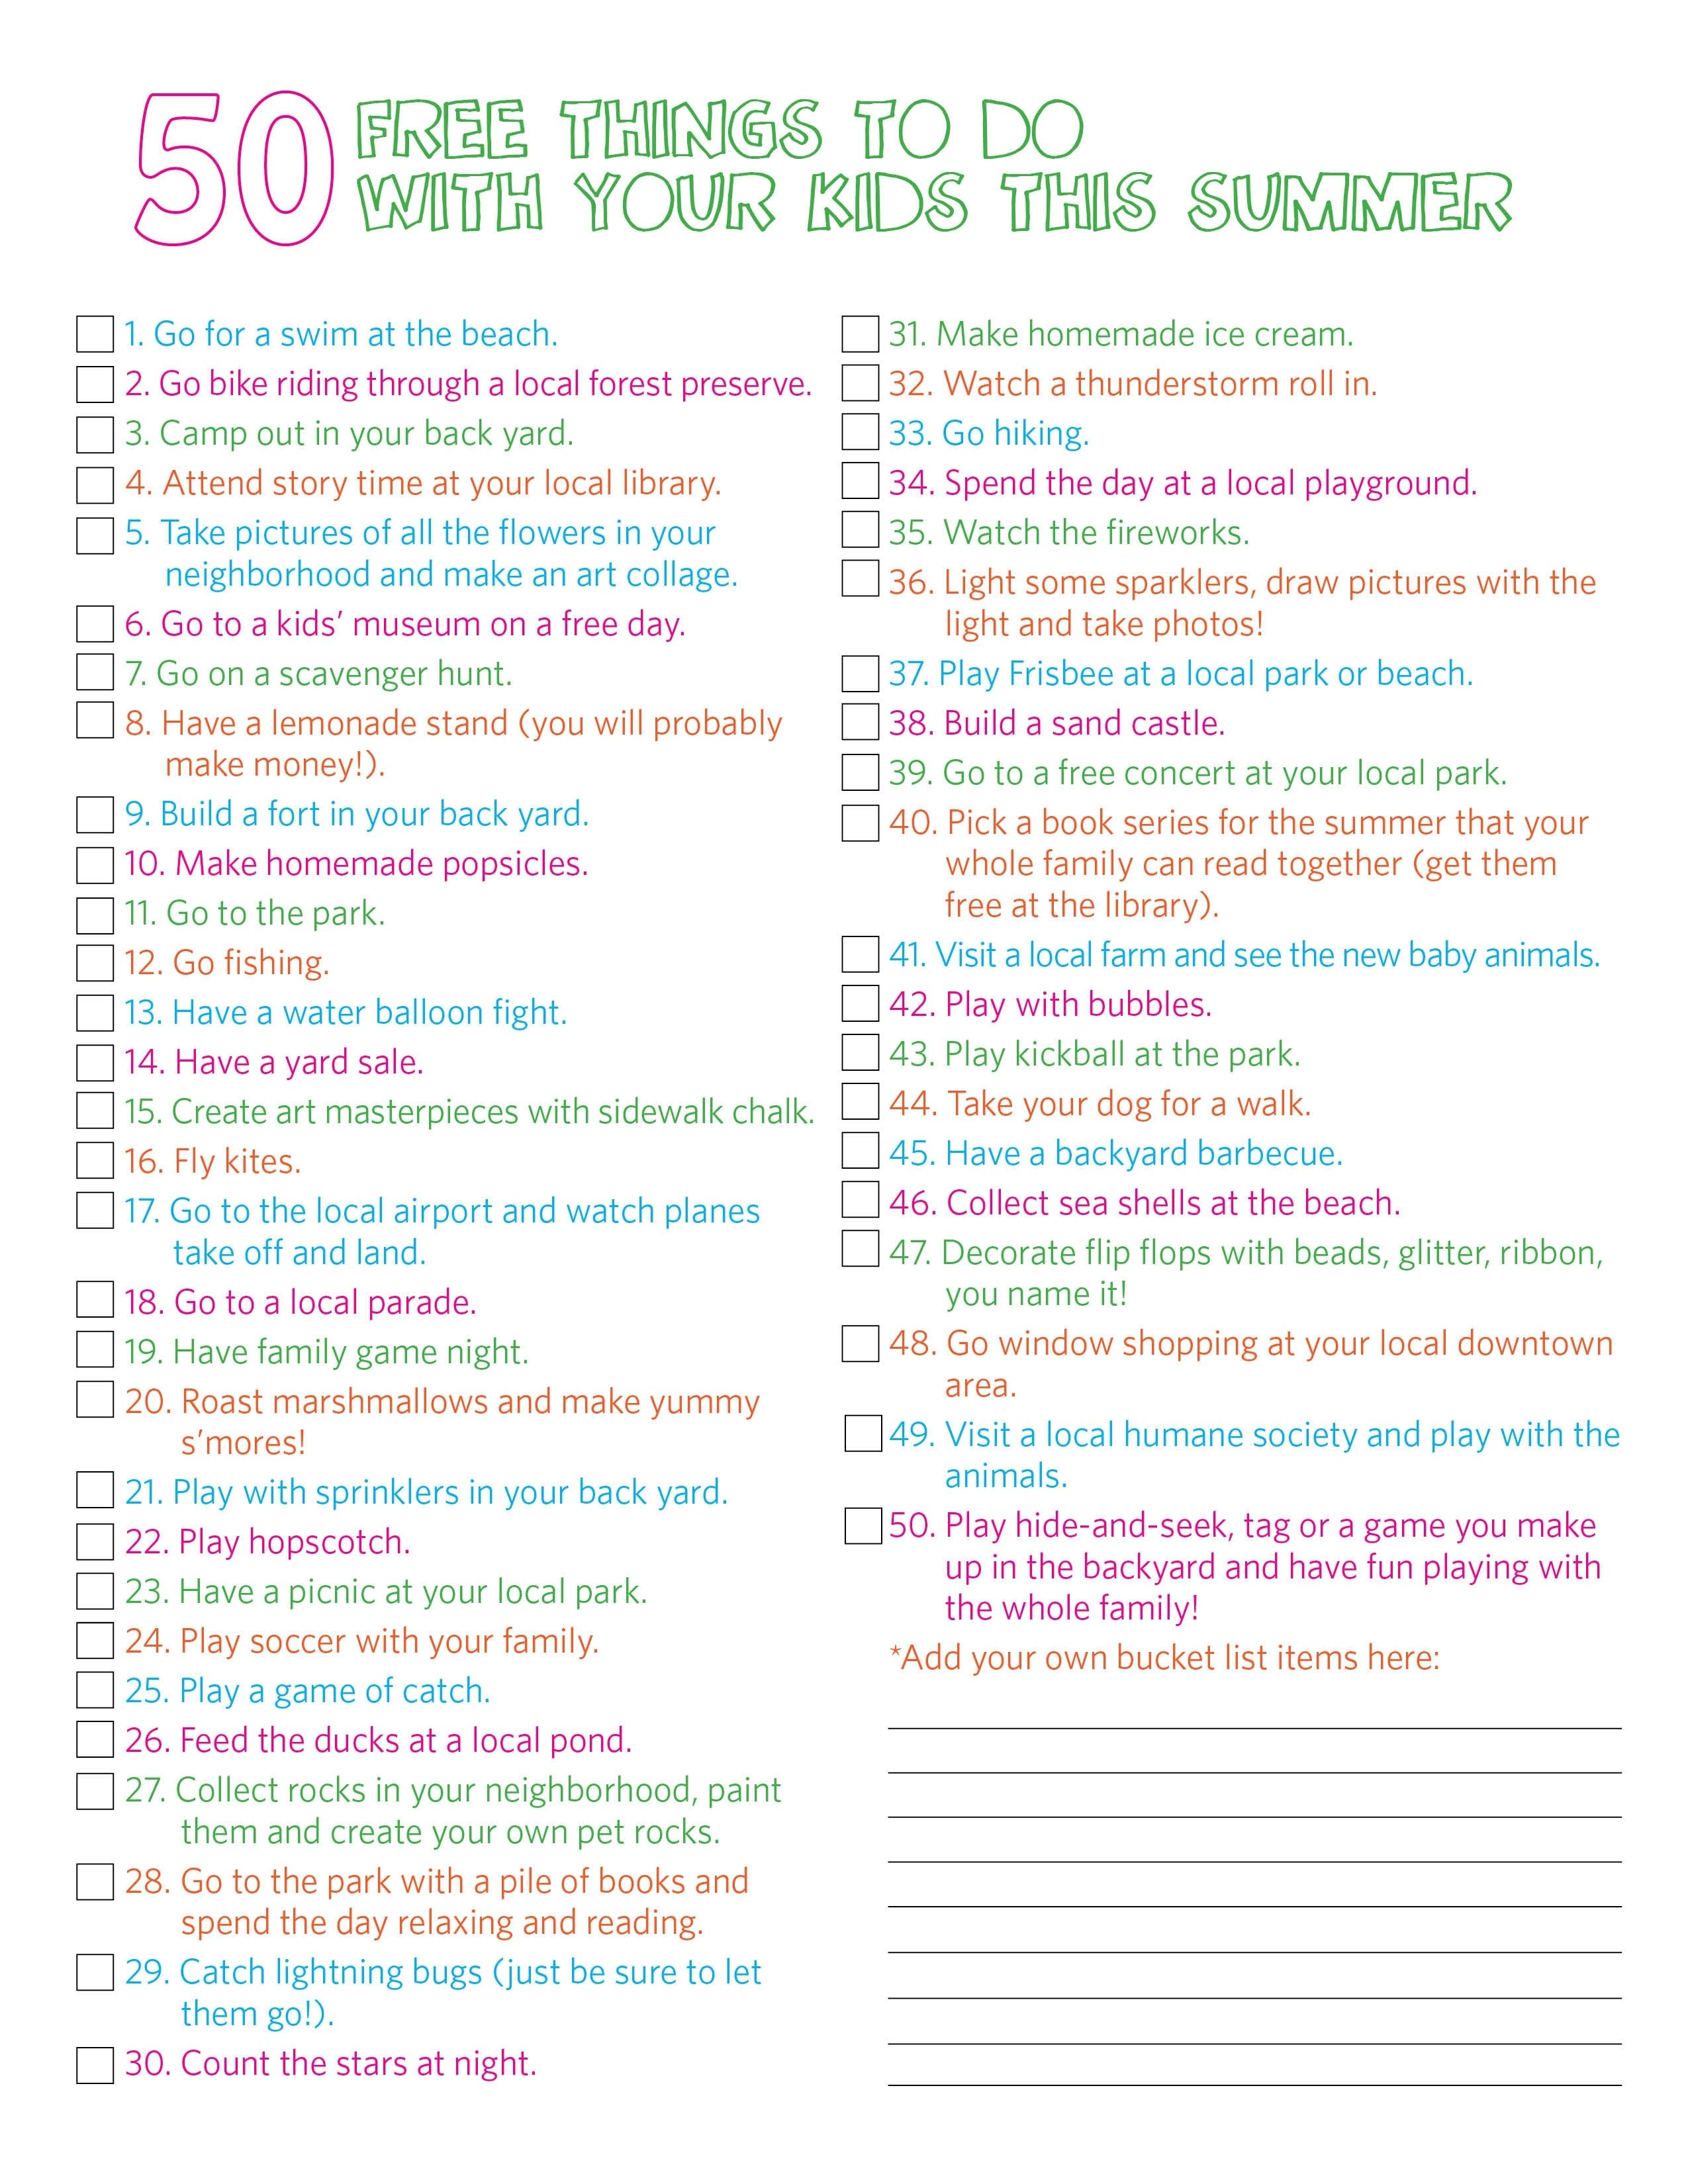 10 Spectacular Funny Bucket List Ideas For Teenagers 50 free bucket list simply real moms 1